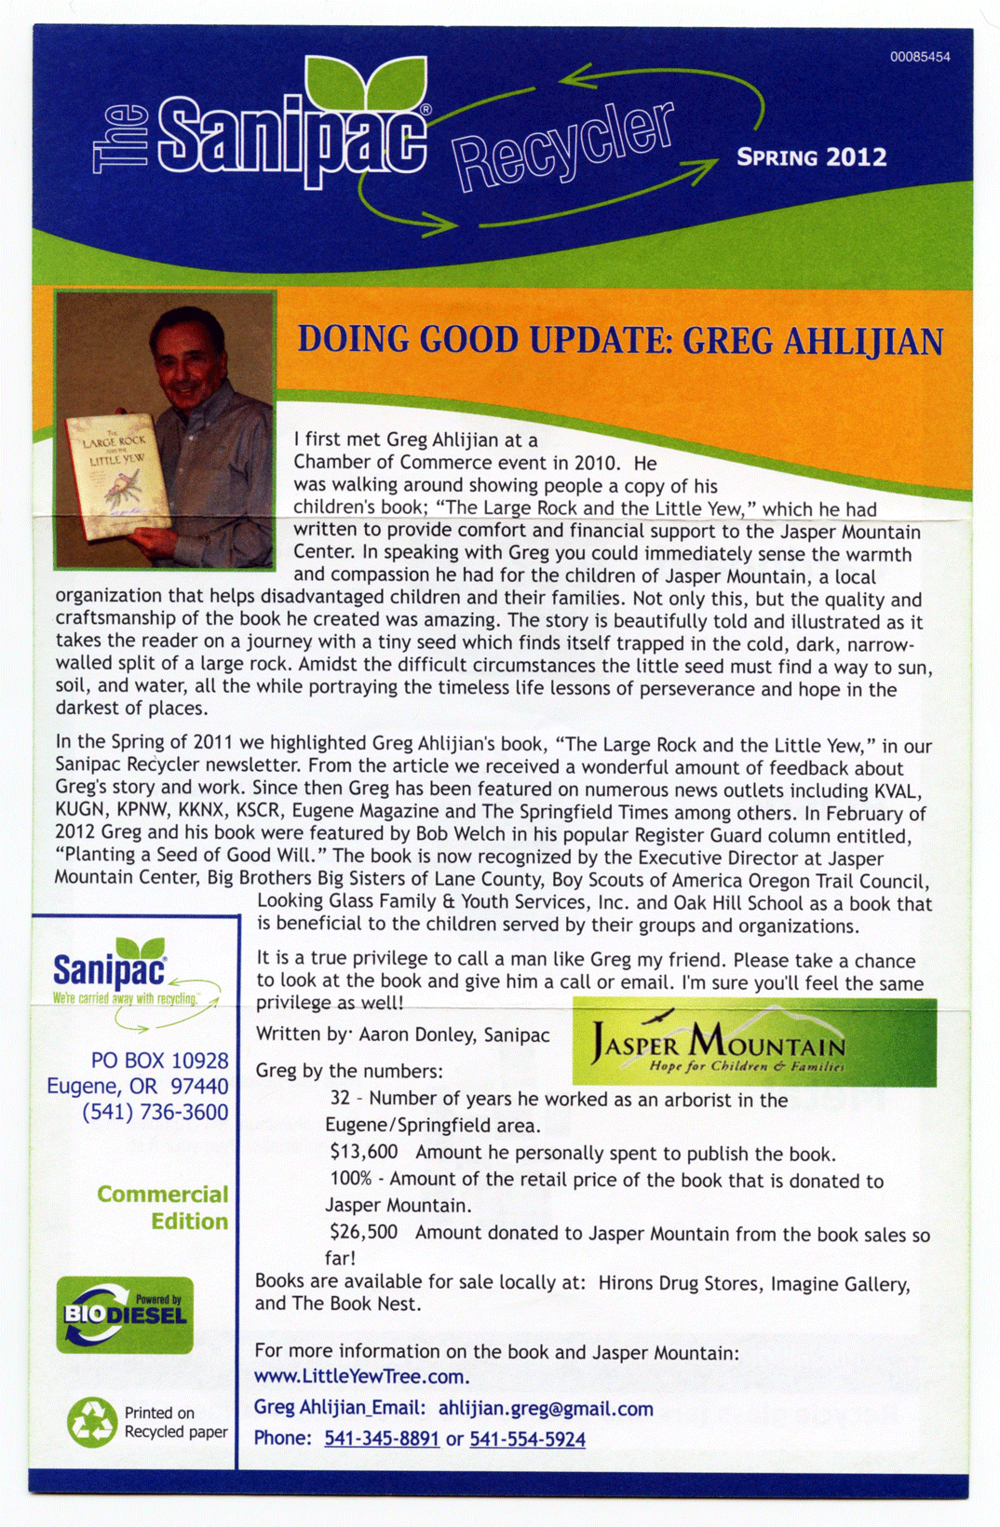 Greg-Ahlijian_Press020_Sanipac-Newsletter-Story-Update_Spring-2012.png